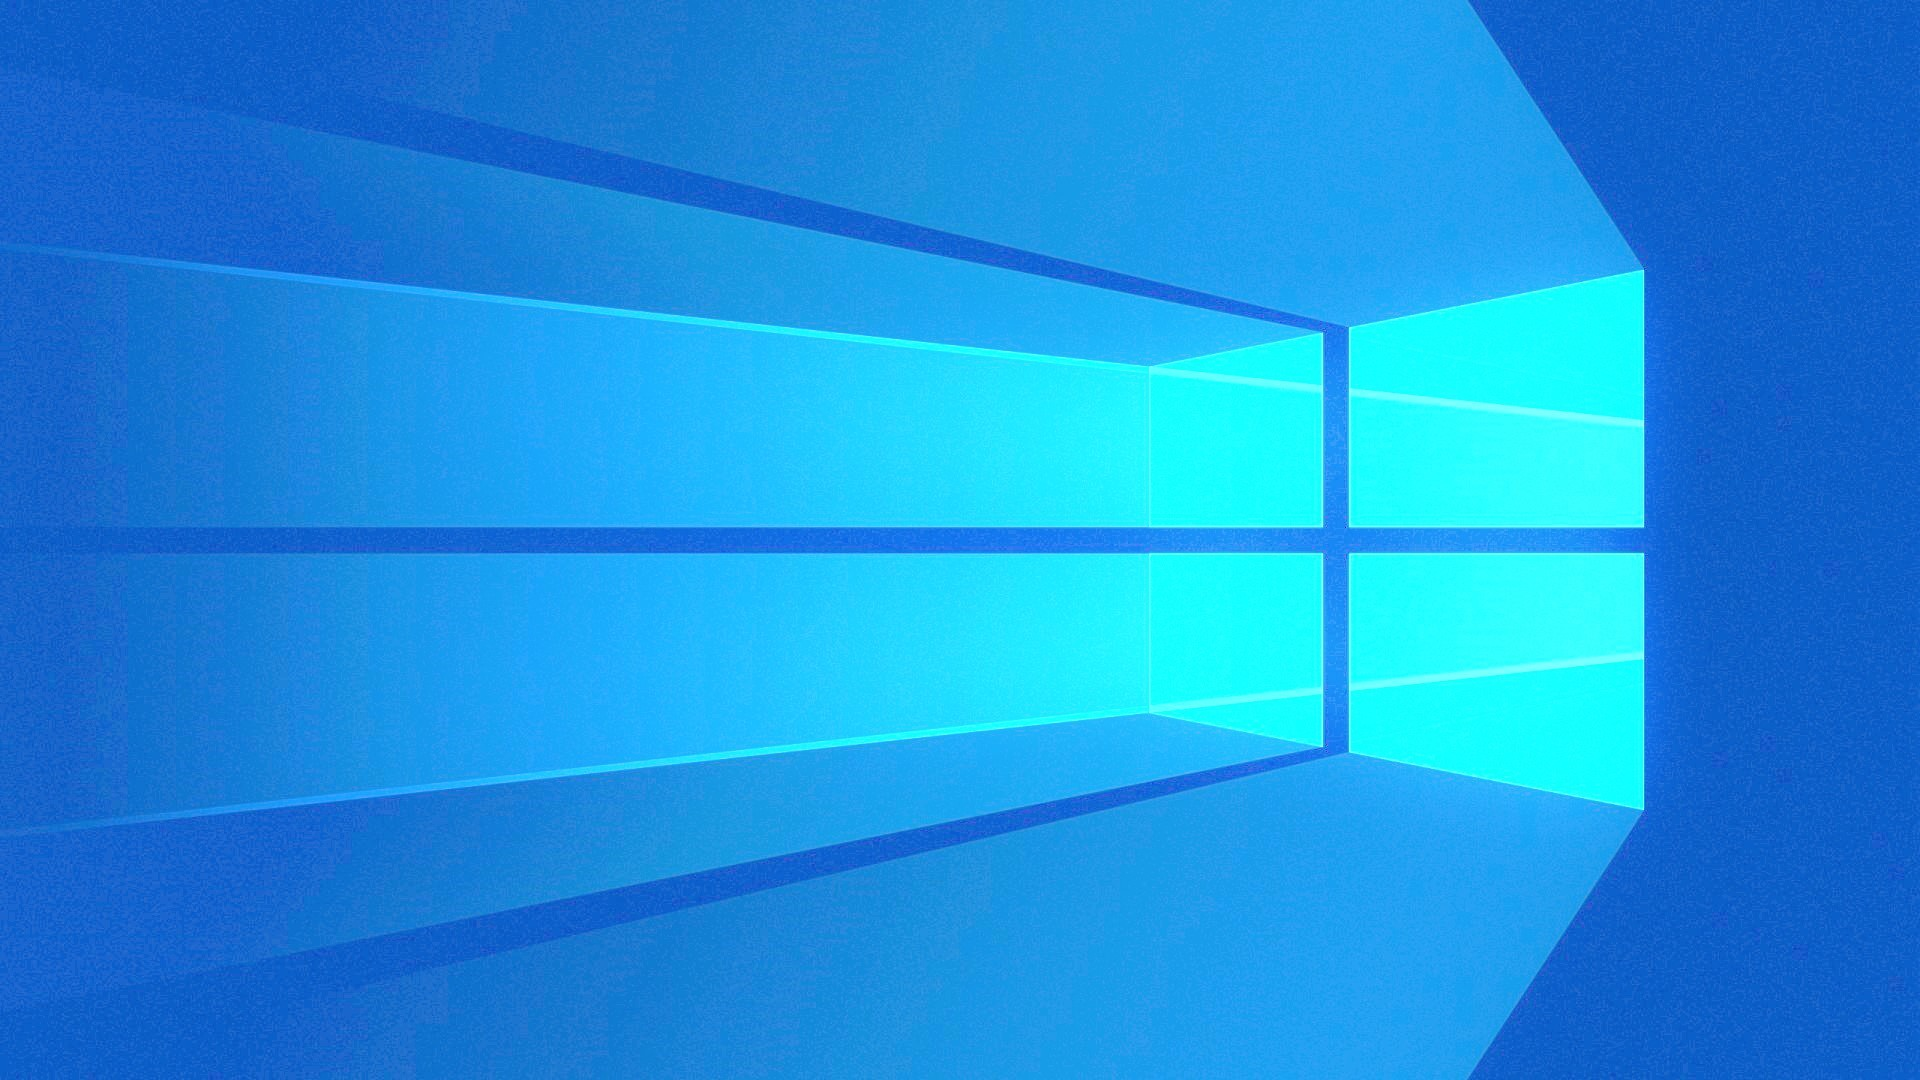 Animated Wallpaper Windows 8 Free Animated Wallpaper On Windows 10 60 Images